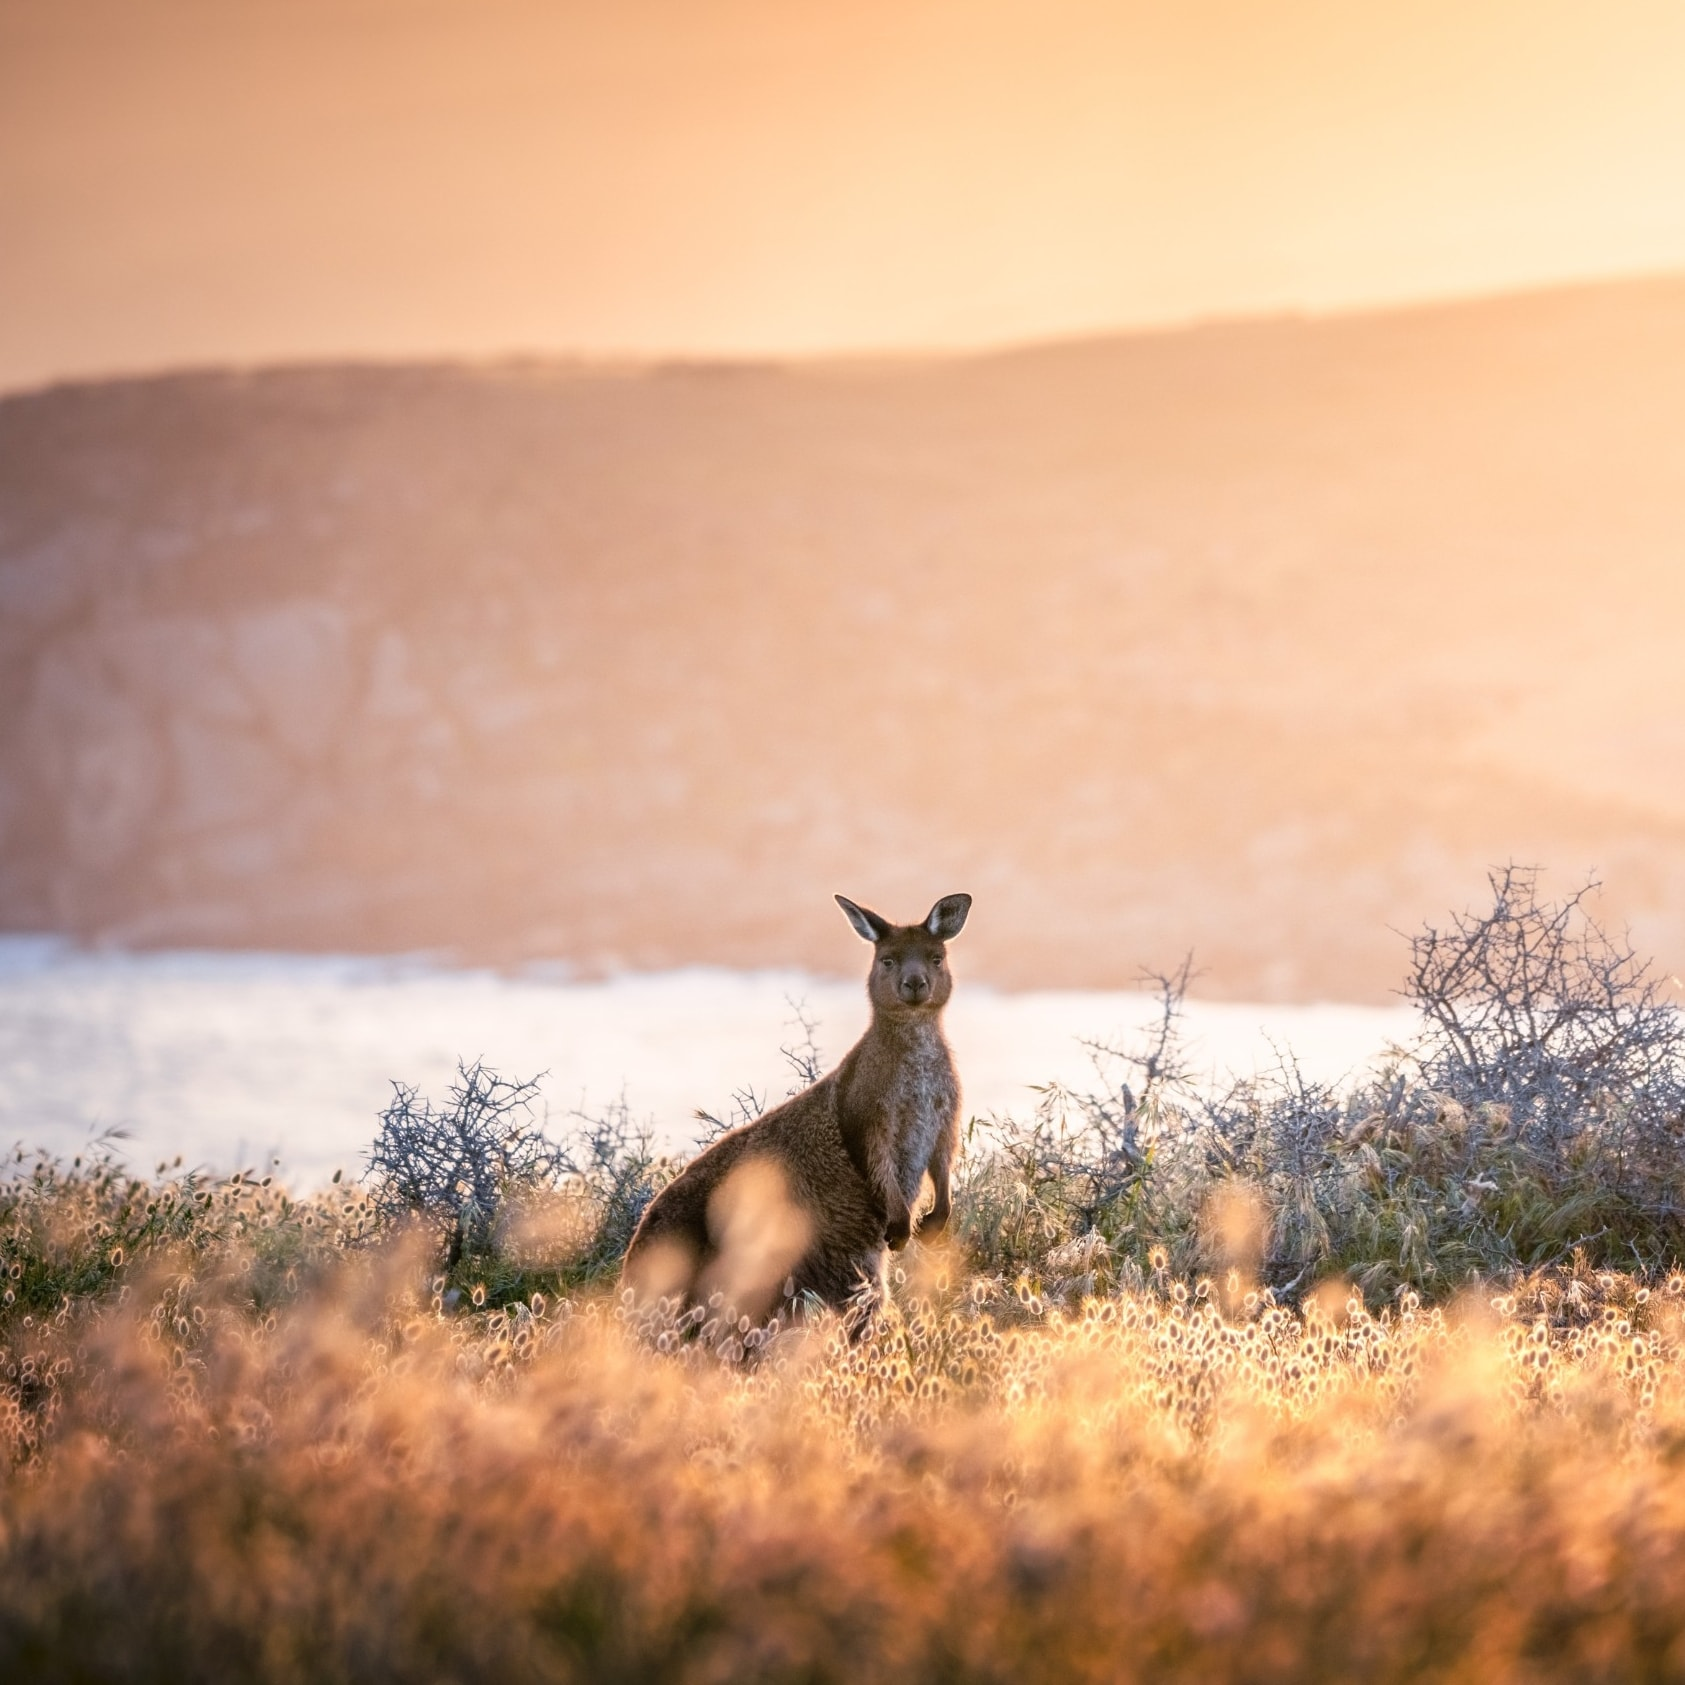 Kangaroo at sunset in Cape Willoughby © South Australian Tourism Commission